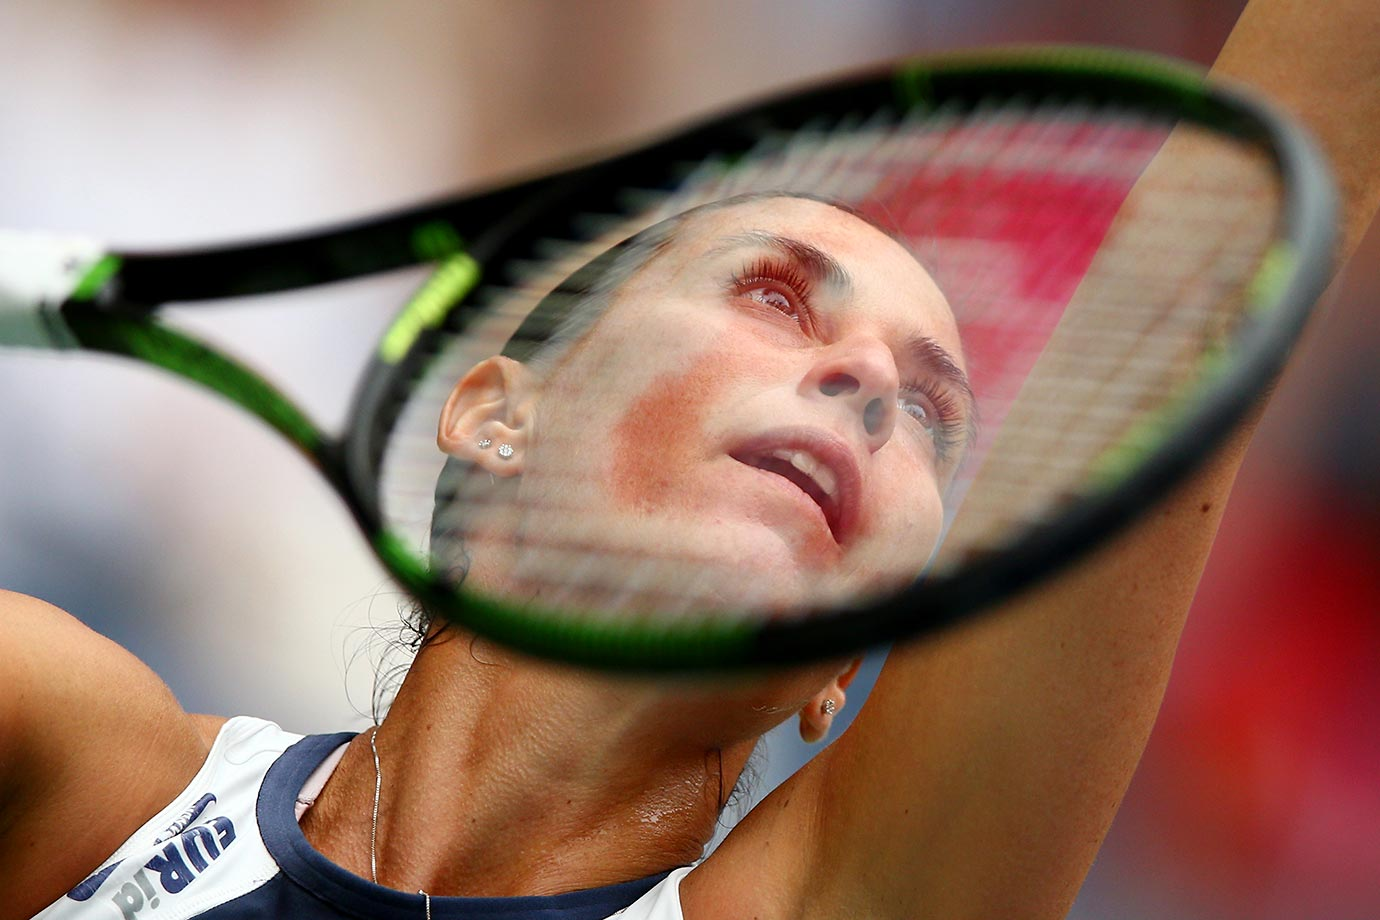 Flavia Pennetta serves to Roberta Vinci during their singles Final match at the U.S. Open.